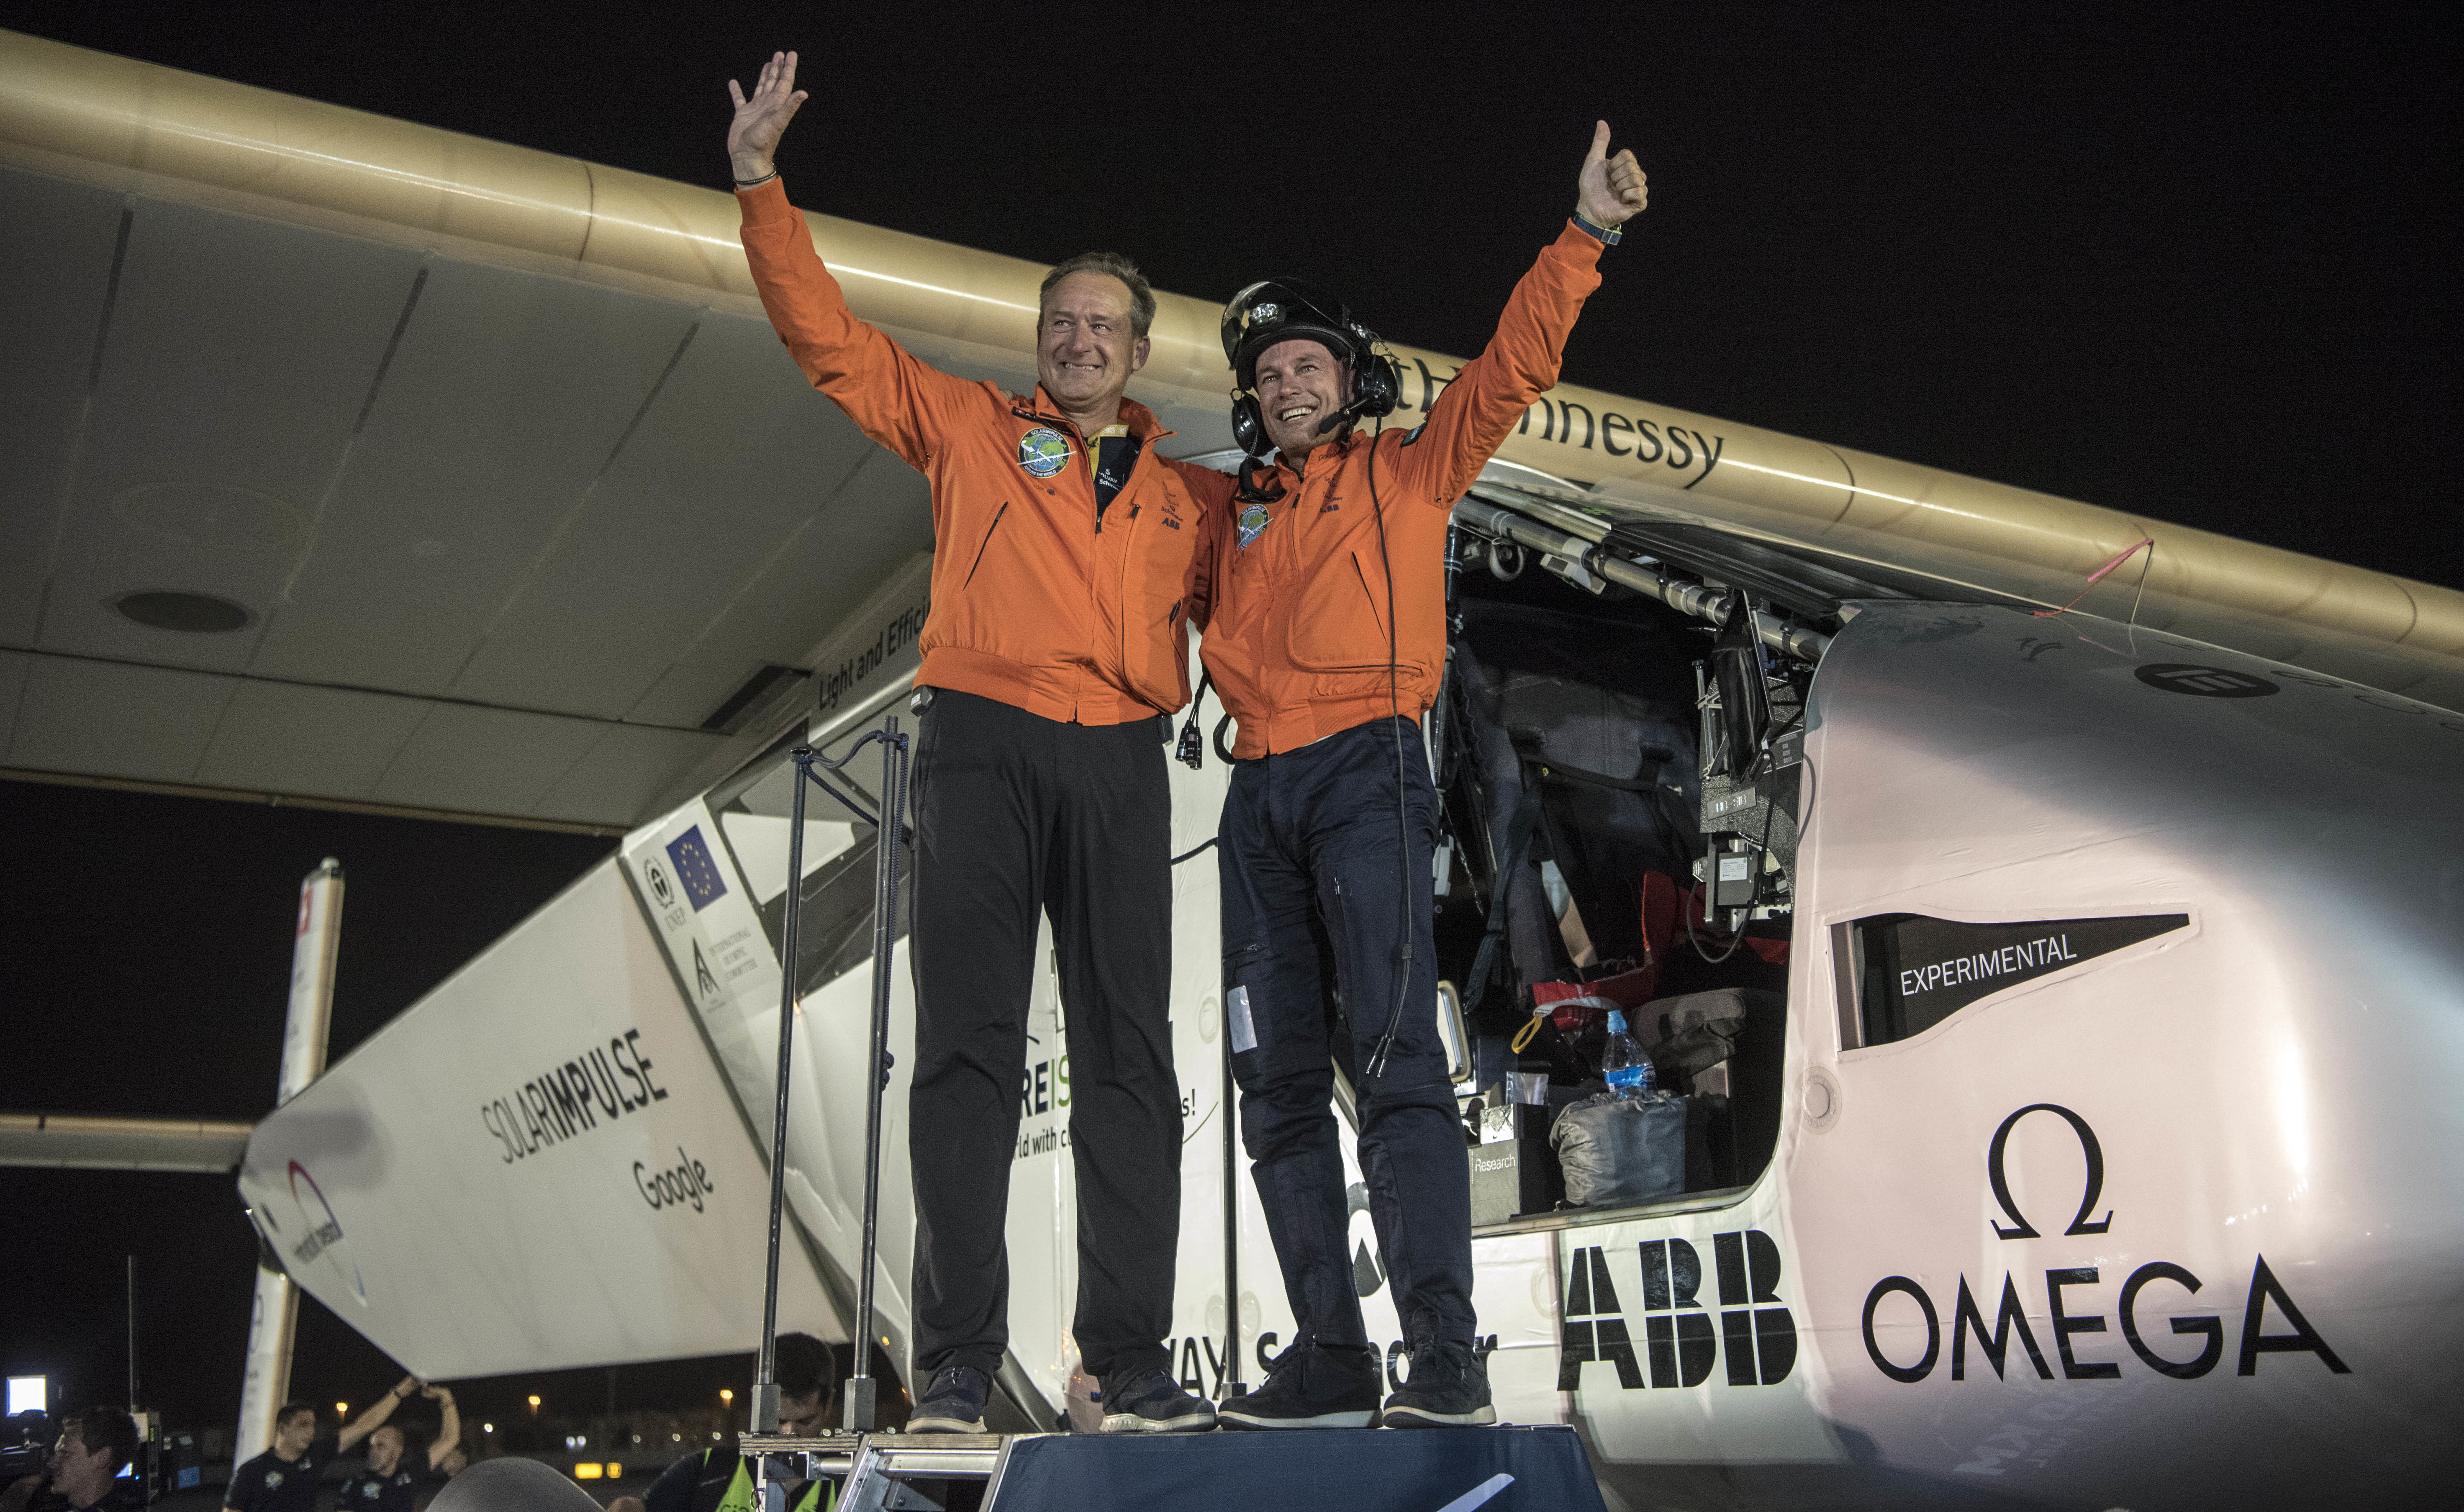 After Solar Impulse's successful landing in Abu Dhabi, the capital of the United Arab Emirates, with Bertrand Piccard at the controls, he posed with fellow pilot Andre Borschberg. The two alternated on 23 days' worth of flights without using any fuel.